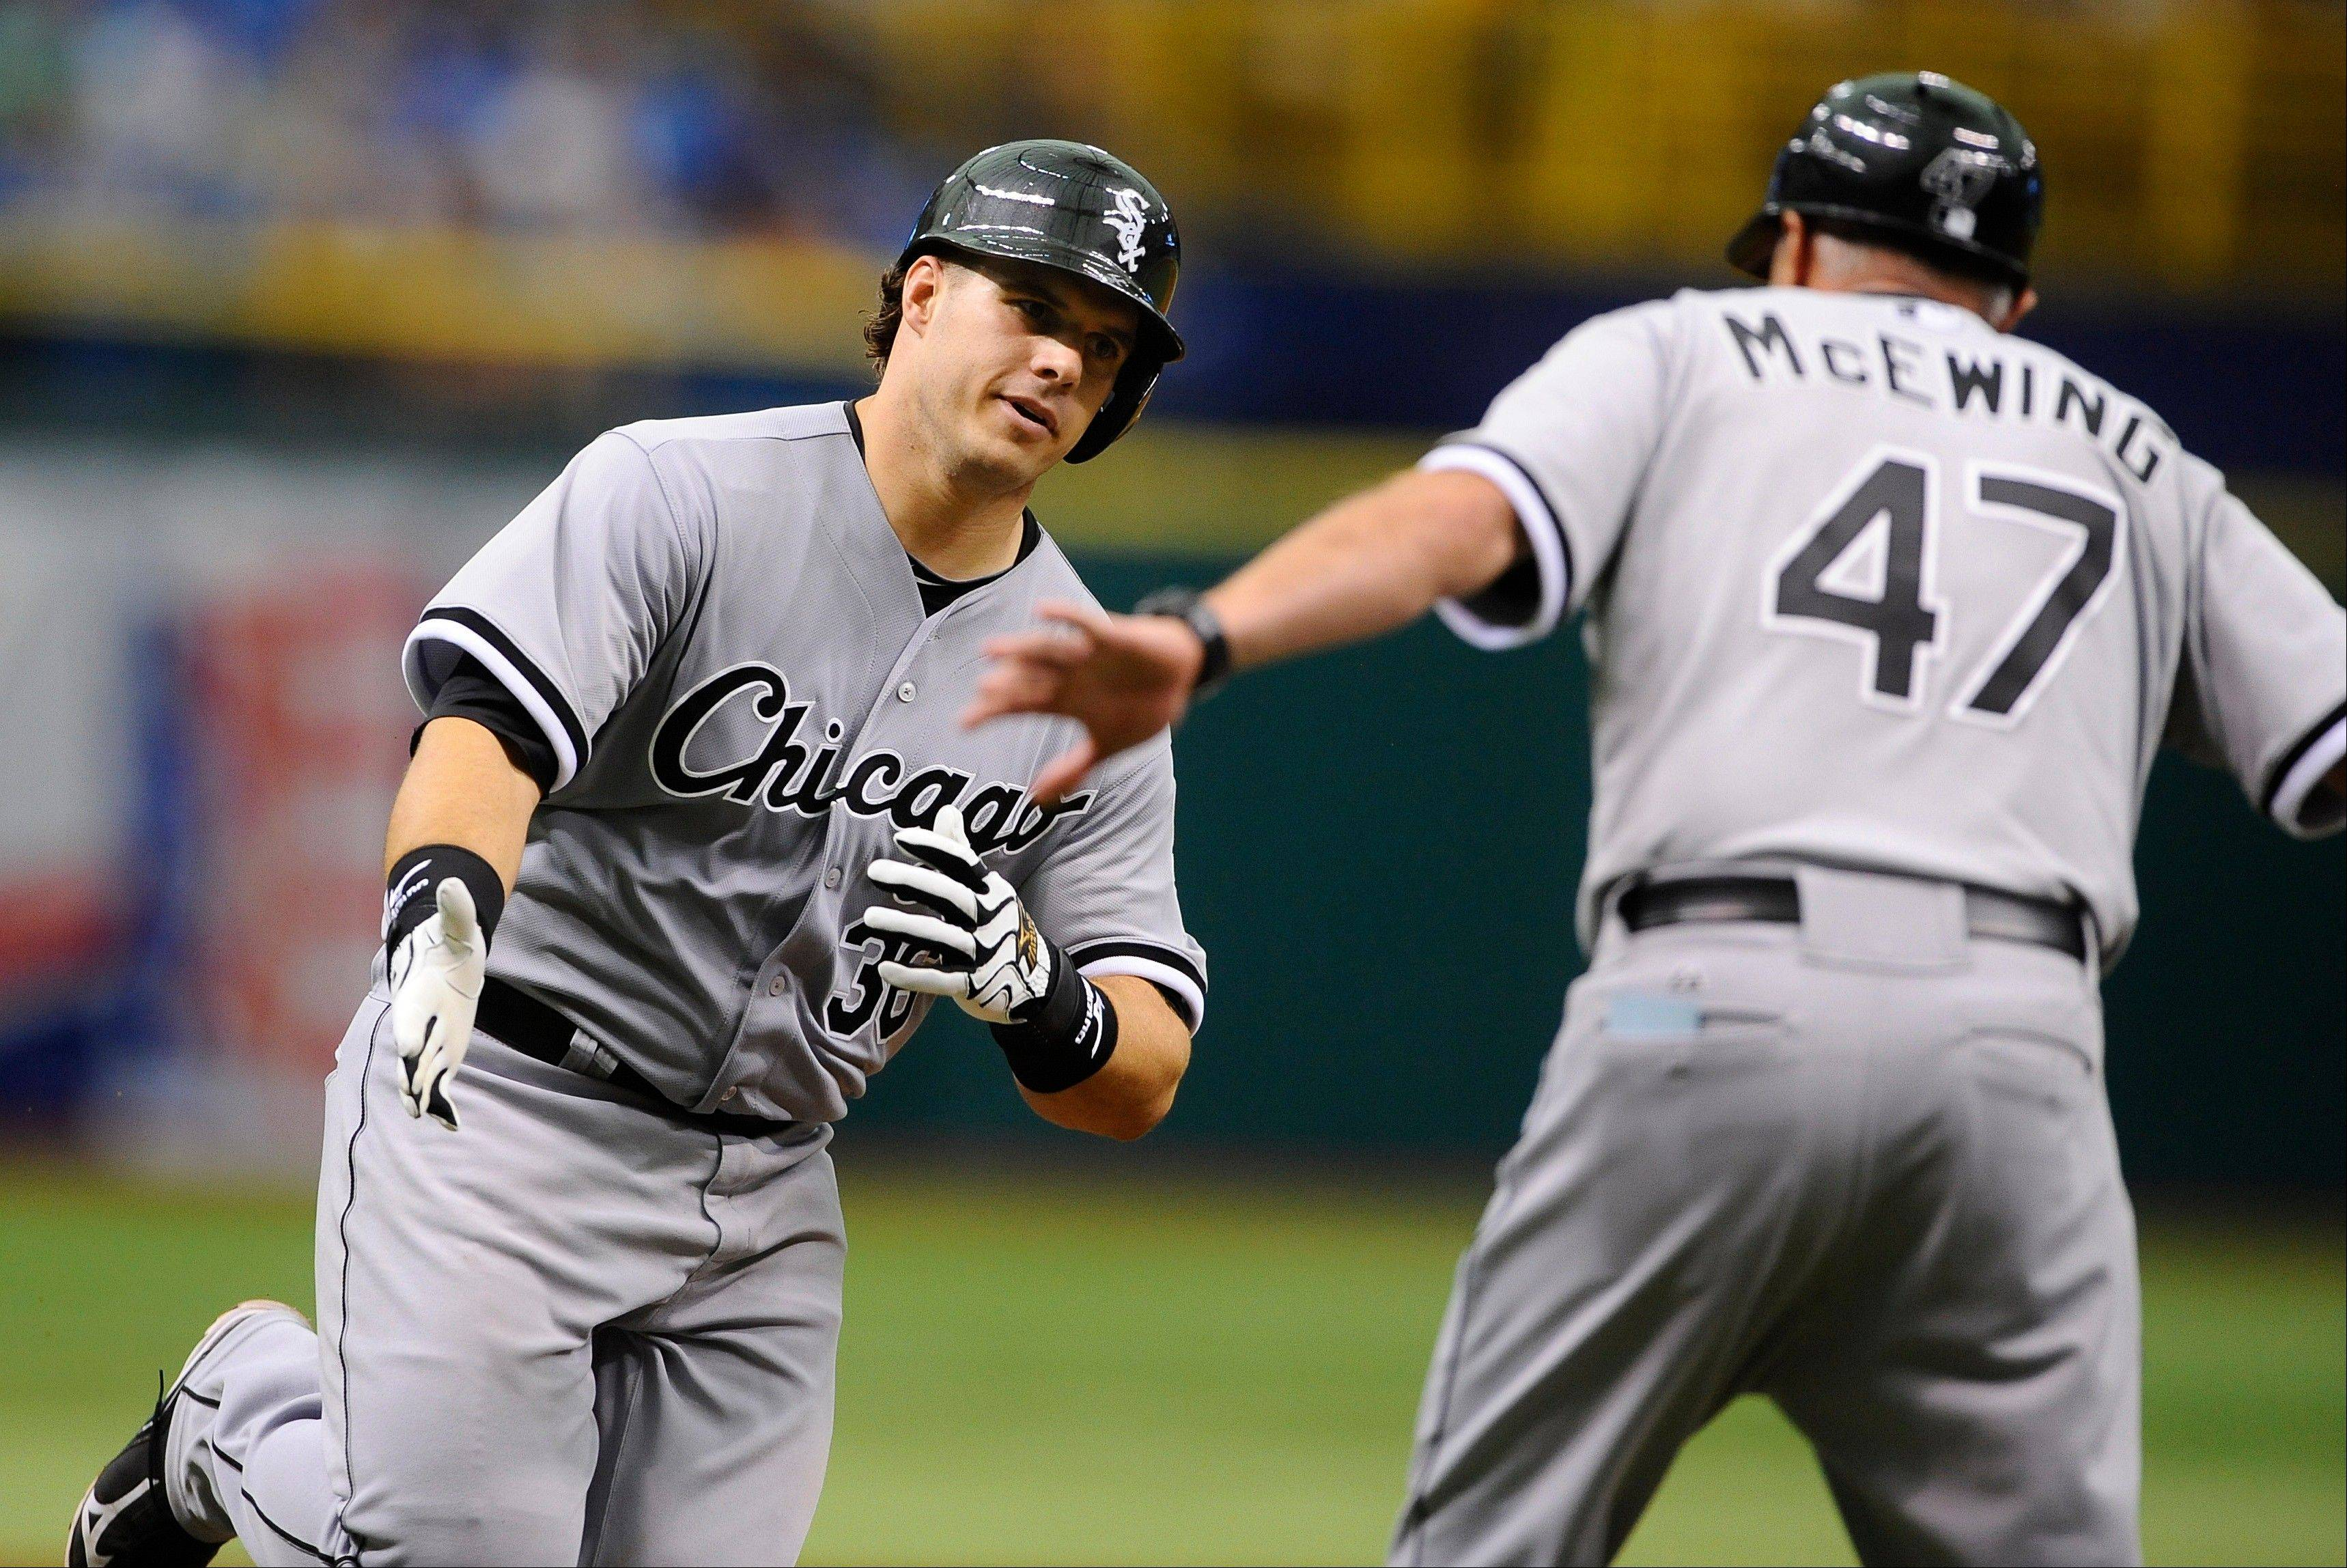 Catcher Josh Phegley, here celebrating with third-base coach Joe McEwing while rounding the bases after hitting his first major-league home run in Sunday�s loss, was one of few bright spots for the White Sox over the weekend.